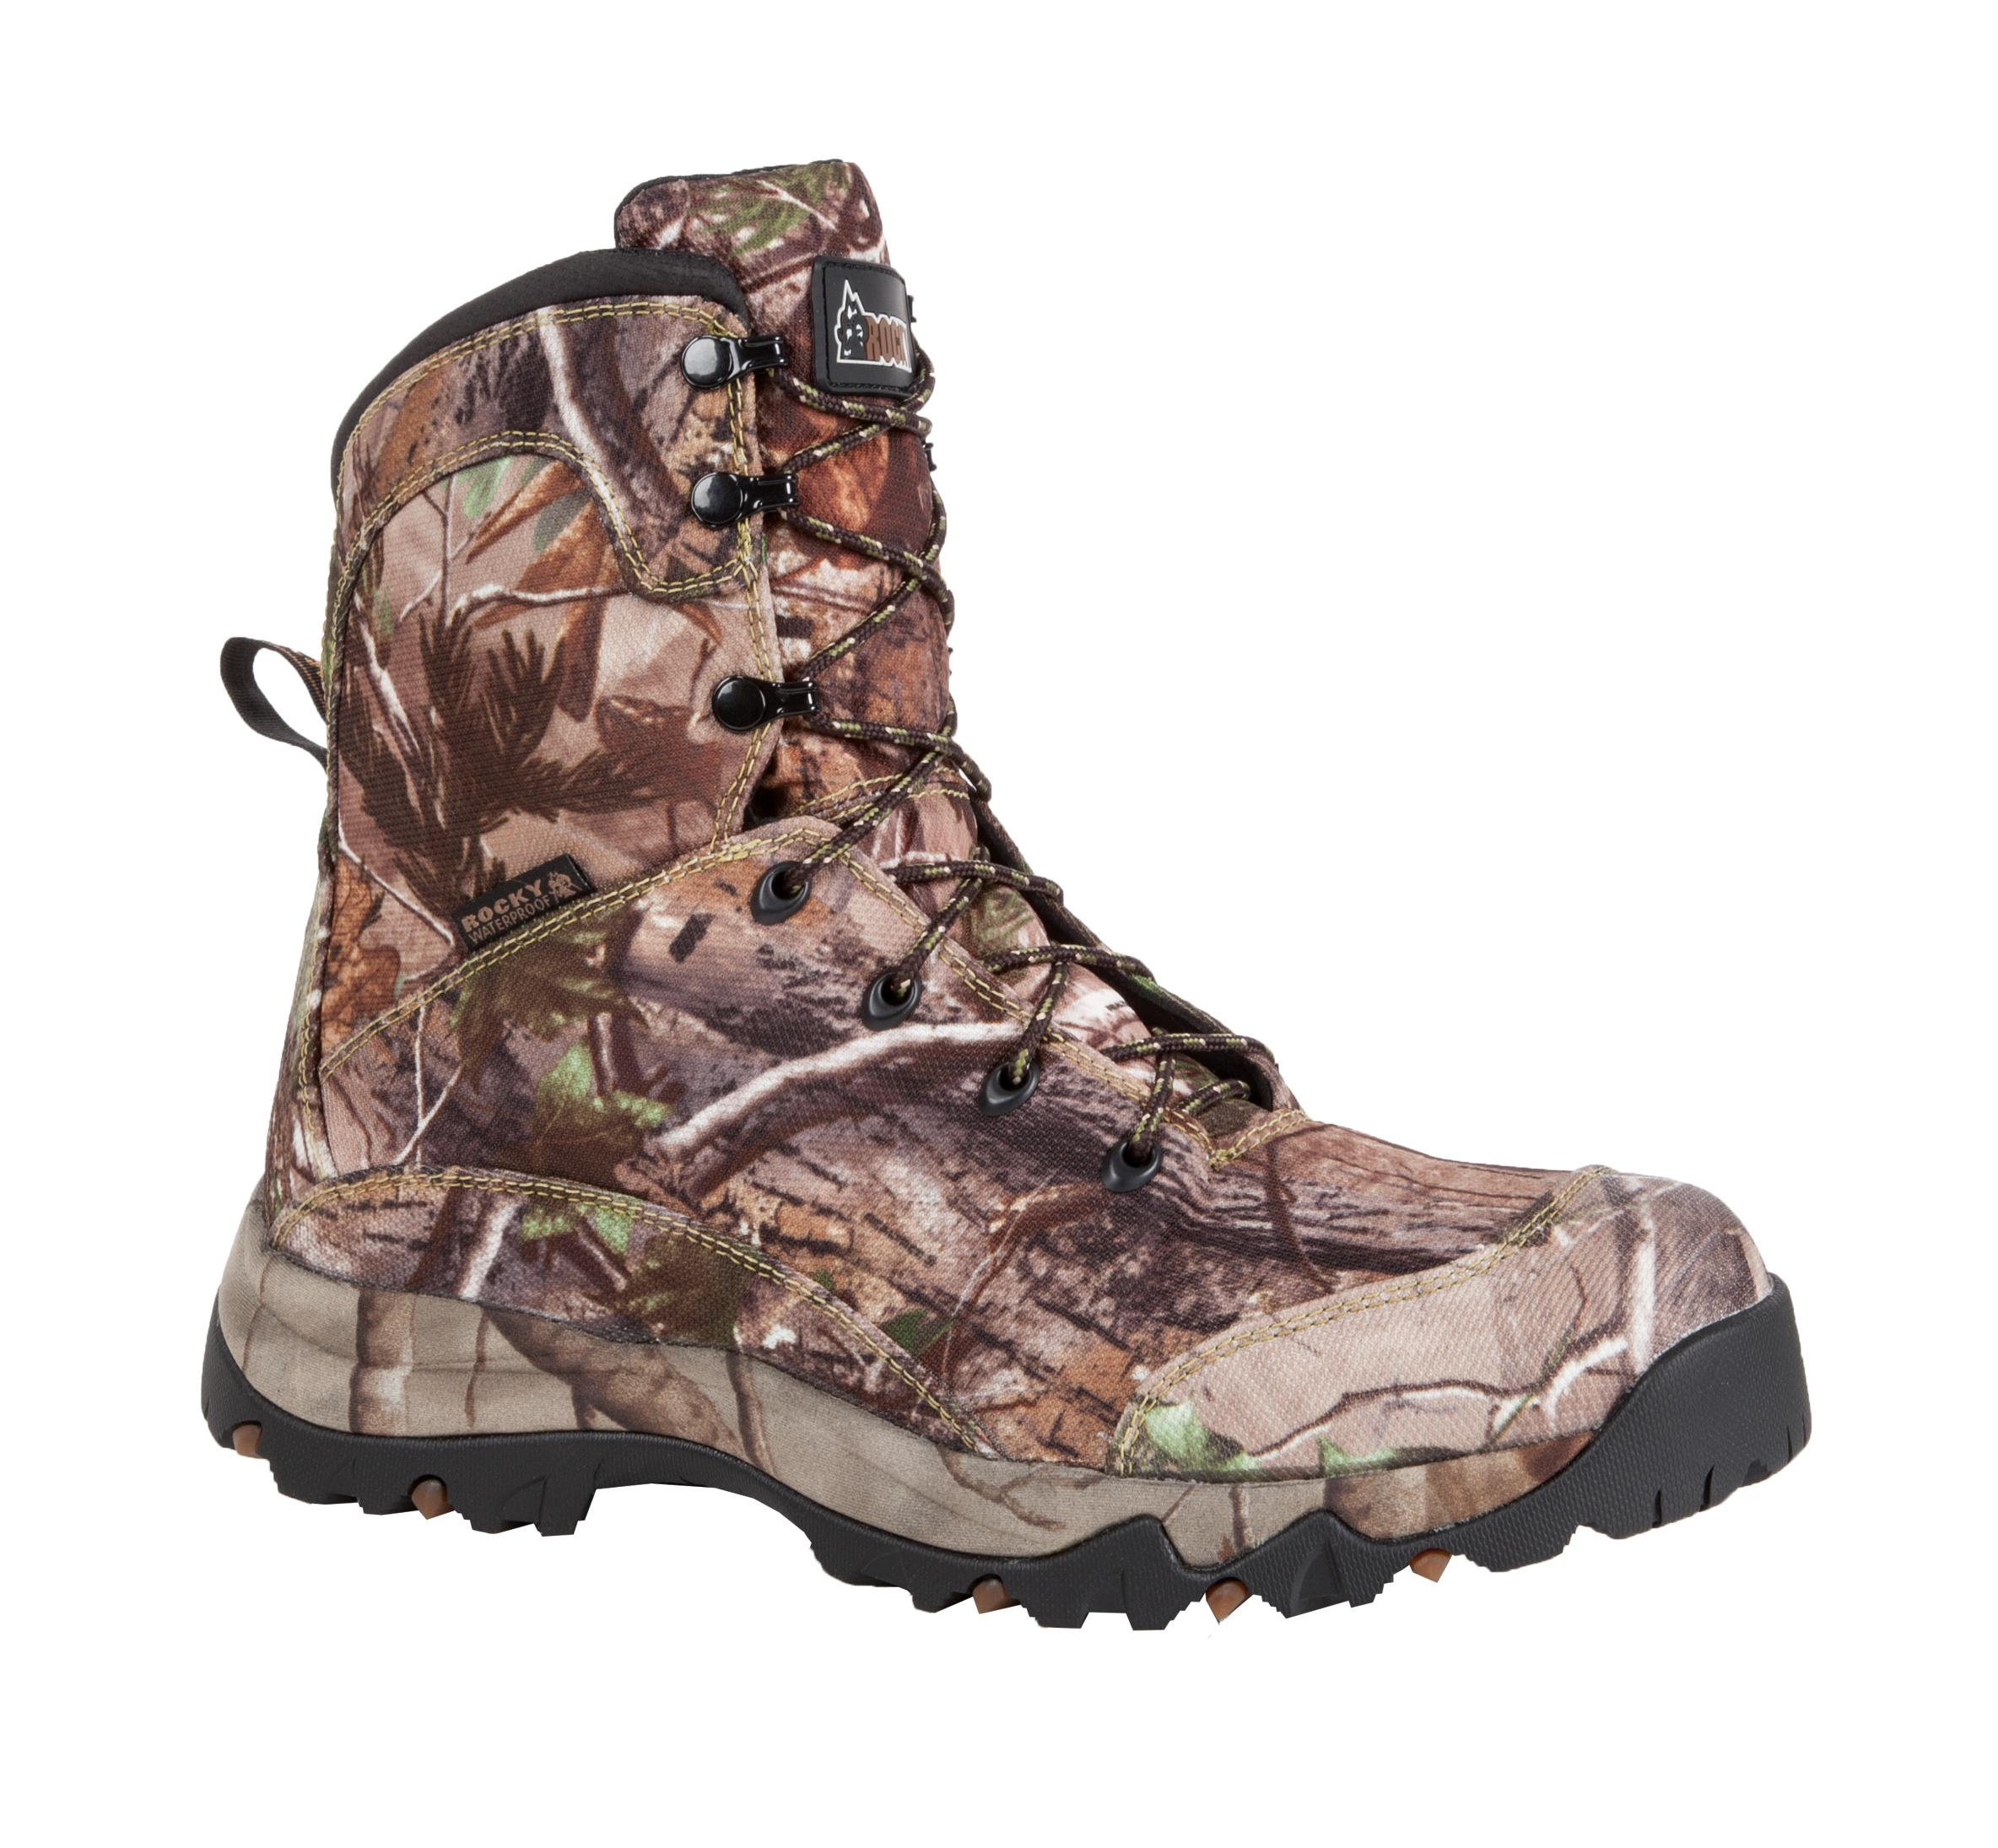 056053dd231 Rocky GameSeeker Outdoor Waterproof Boot